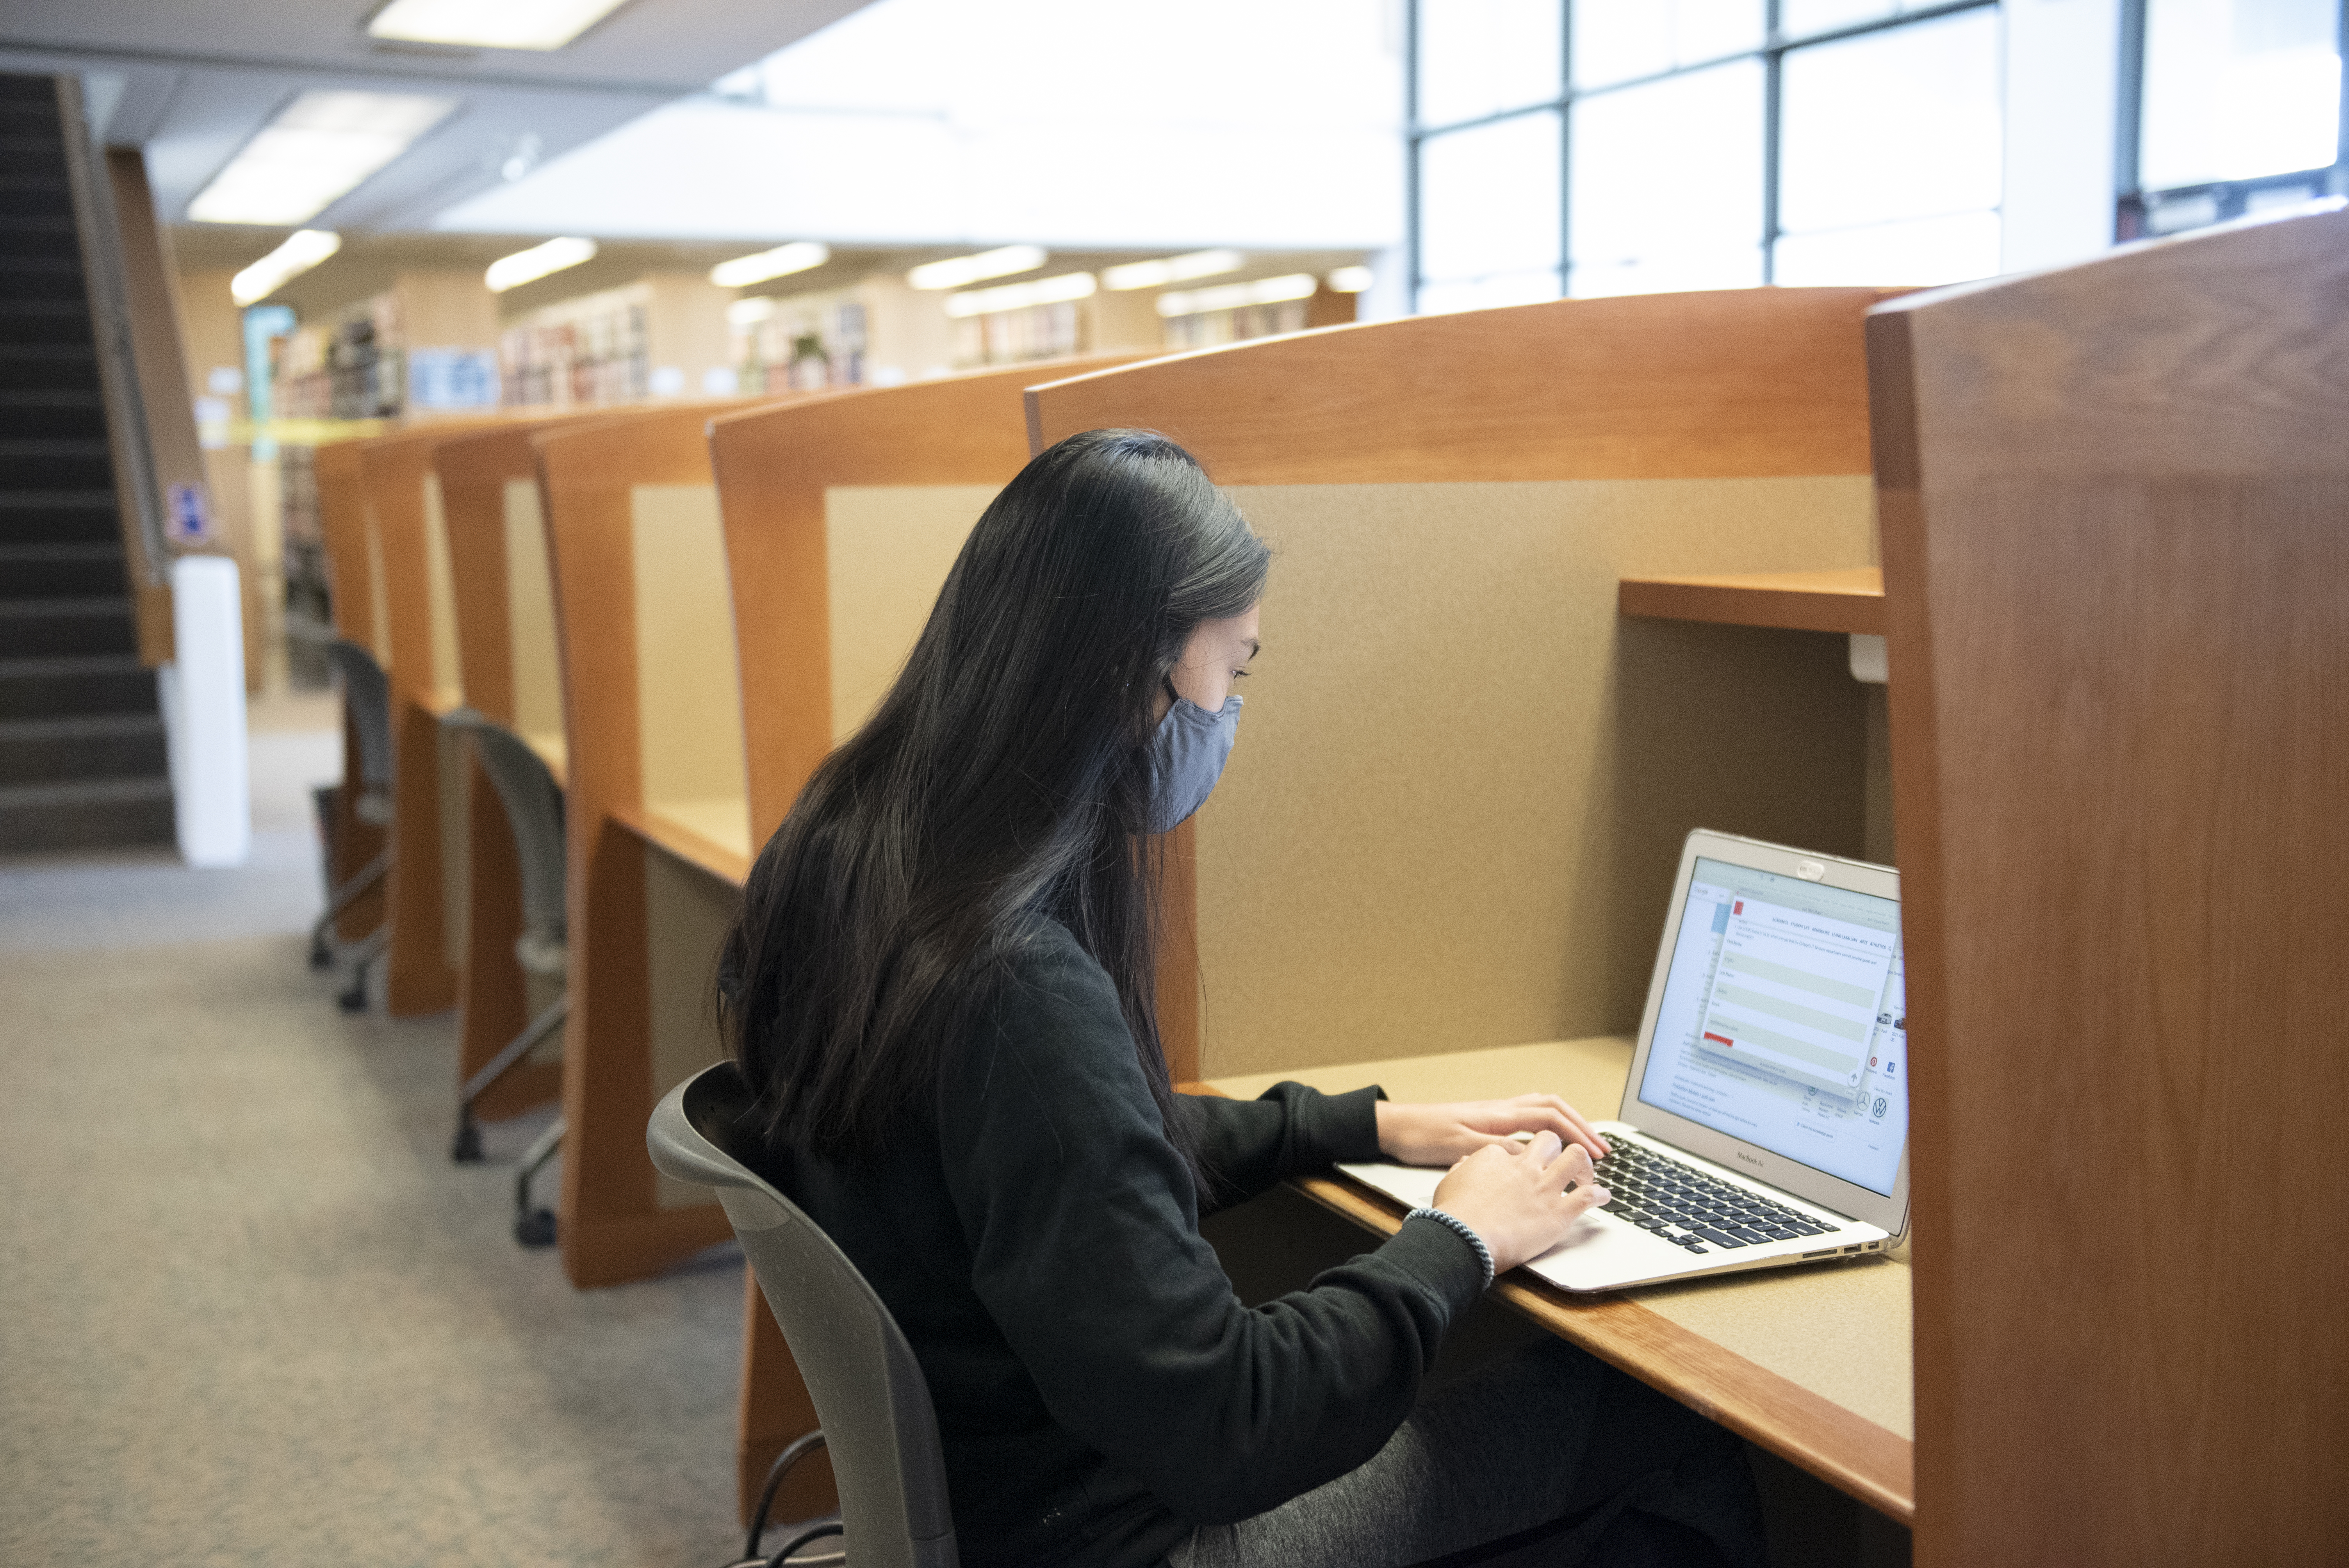 Student works on their laptop in a library carrel with mask on